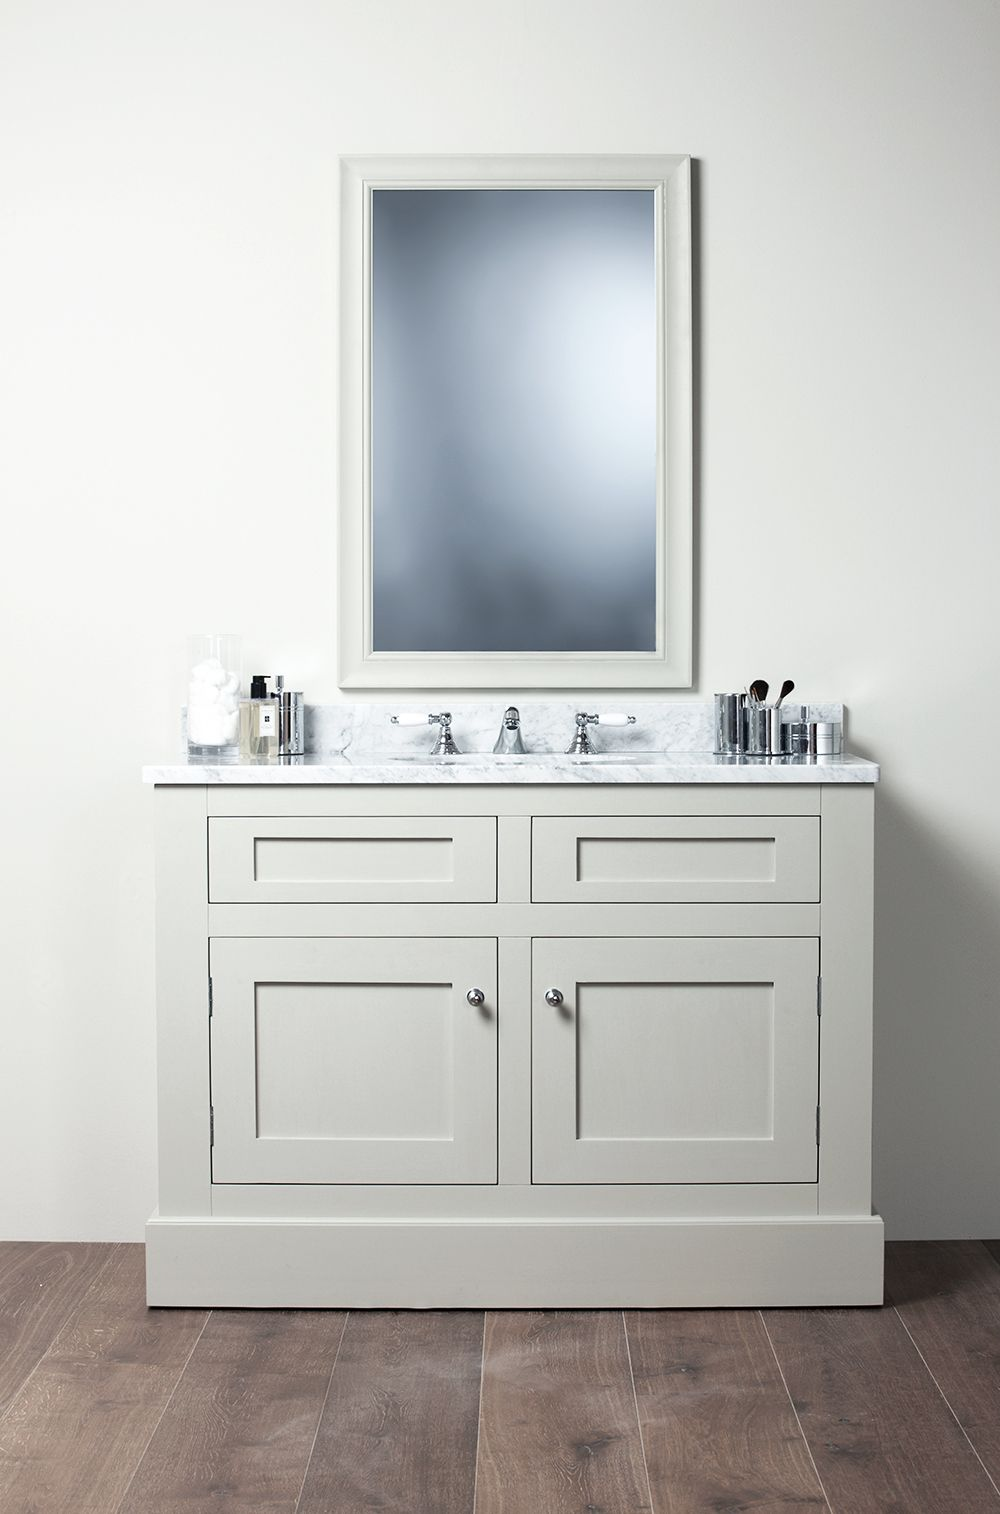 Cool Shaker Style Bathroom Vanity Unit Shaker Bathroom Vanity Download Free Architecture Designs Embacsunscenecom